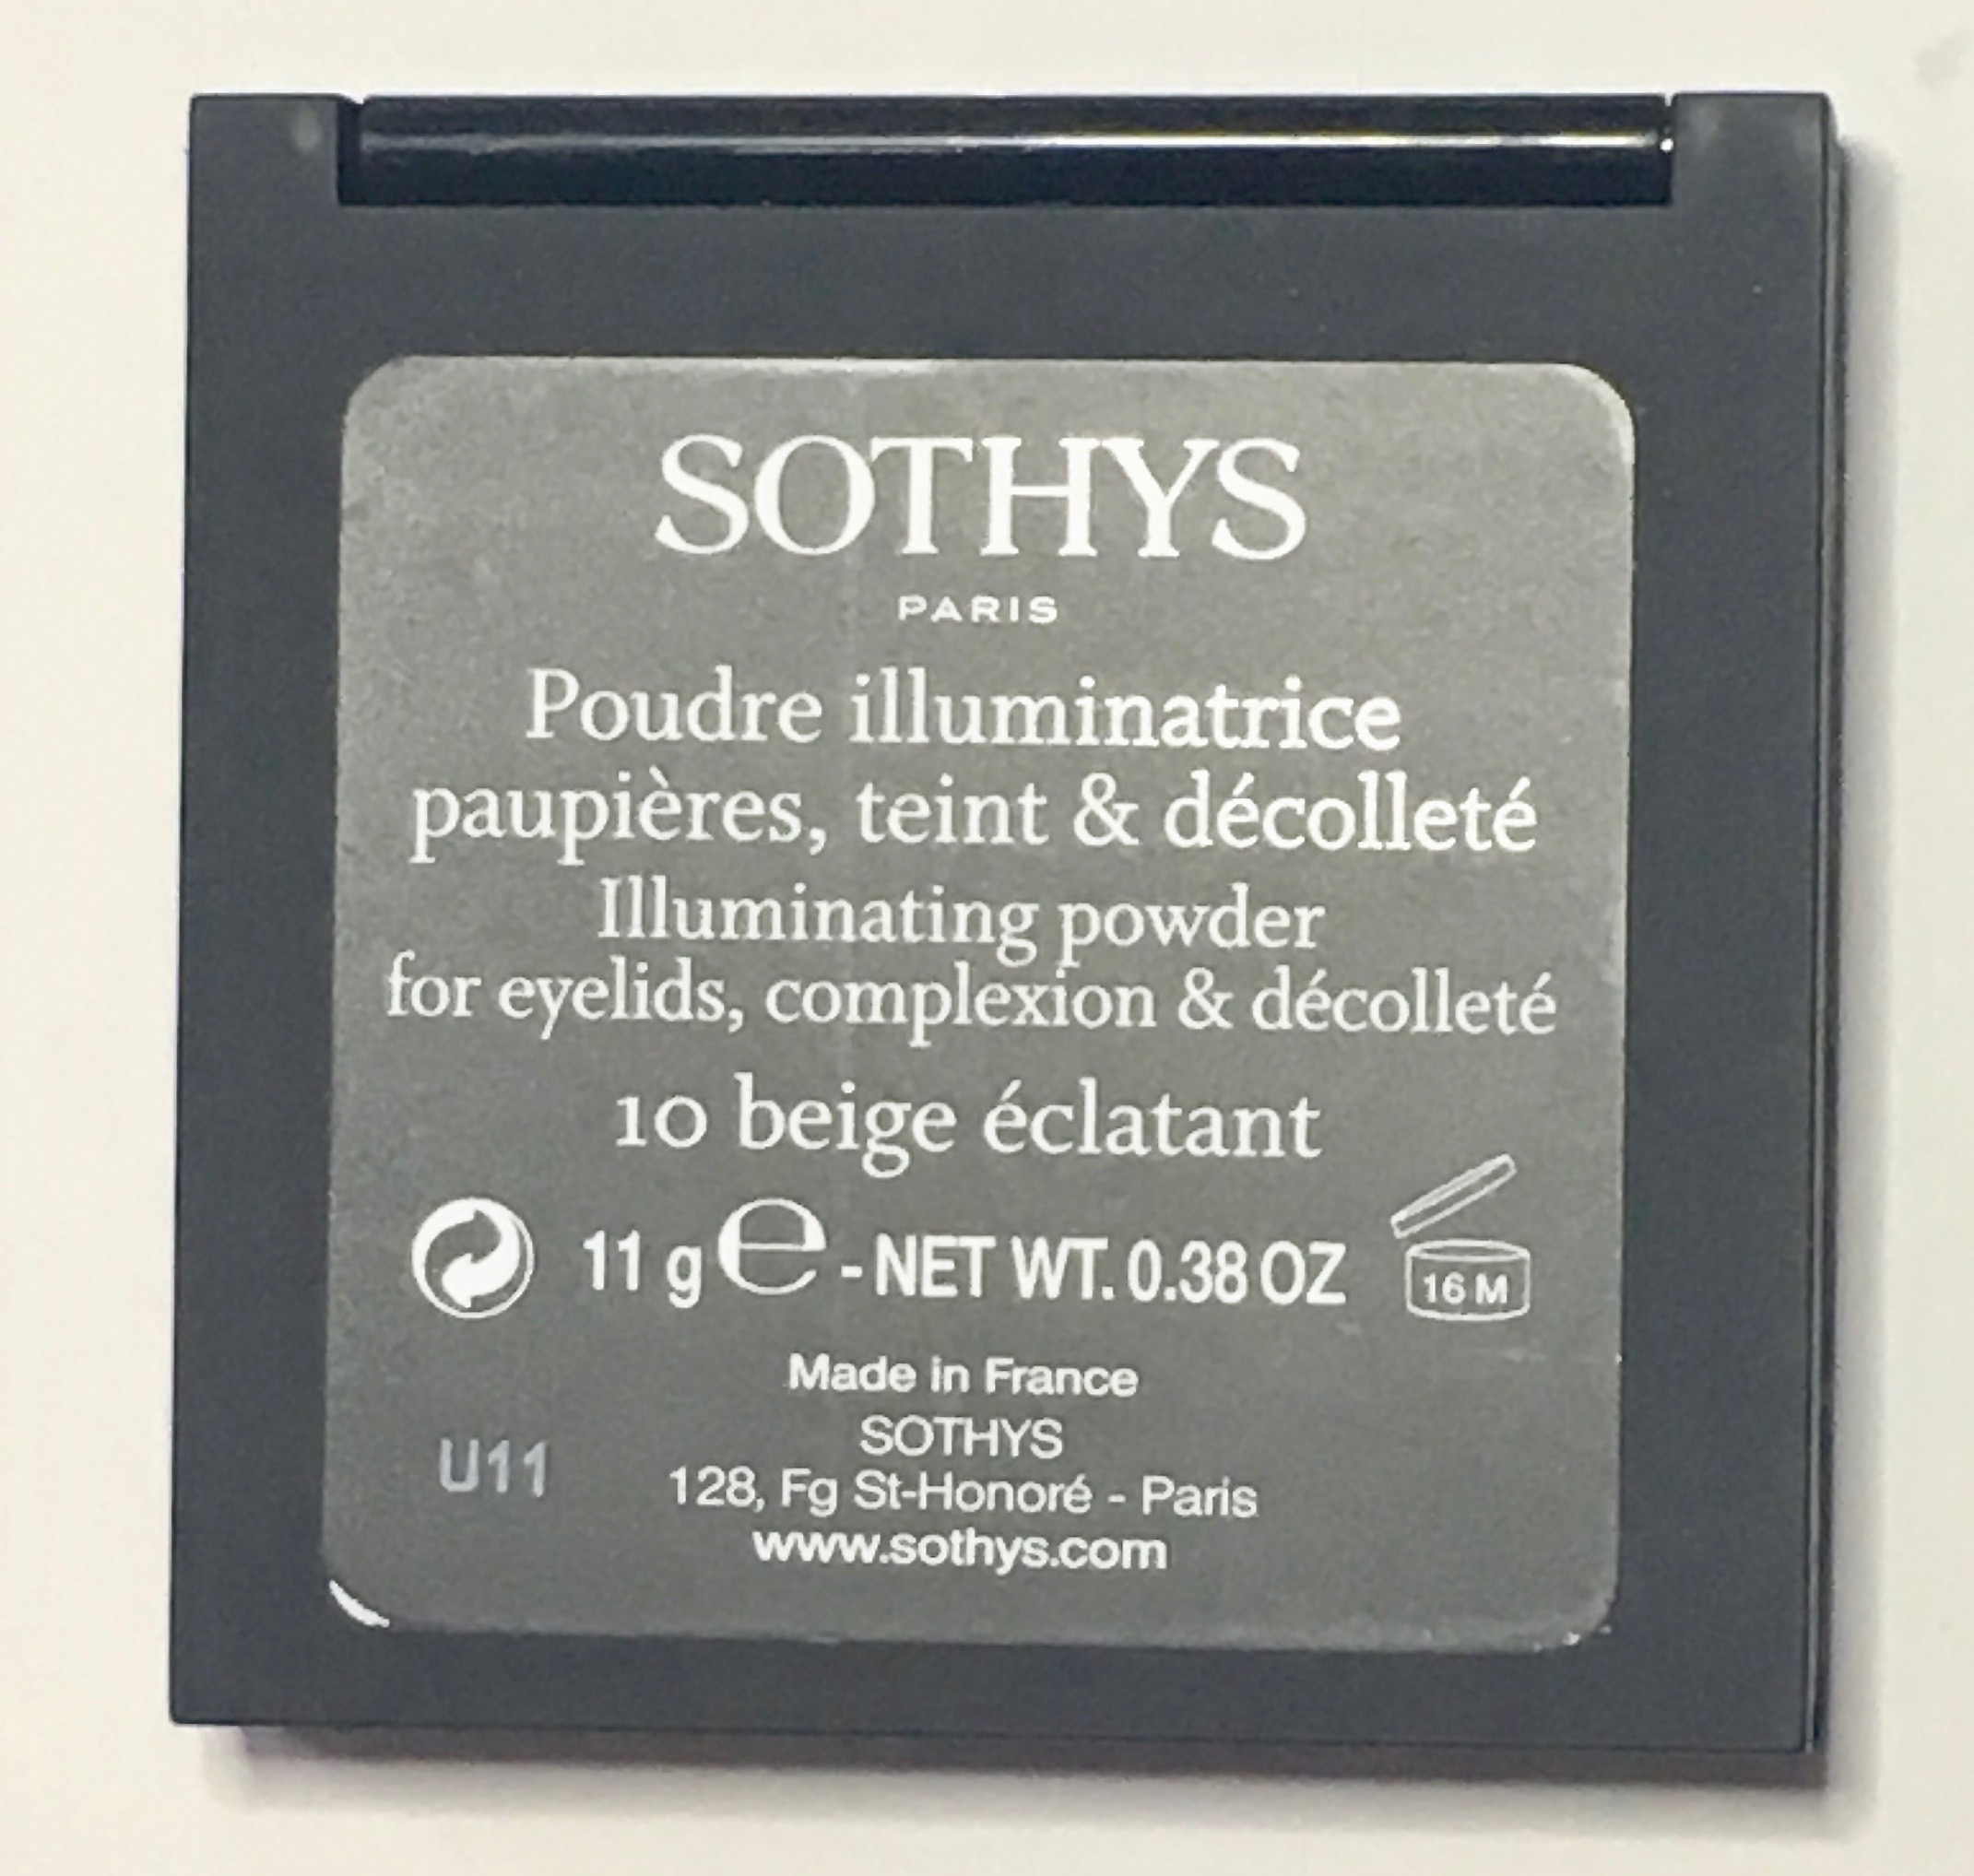 Sothys Bleu Envoûtant Fall Winter 2019 Makeup Collection - Illuminating Powder 10 Beige Éclatant